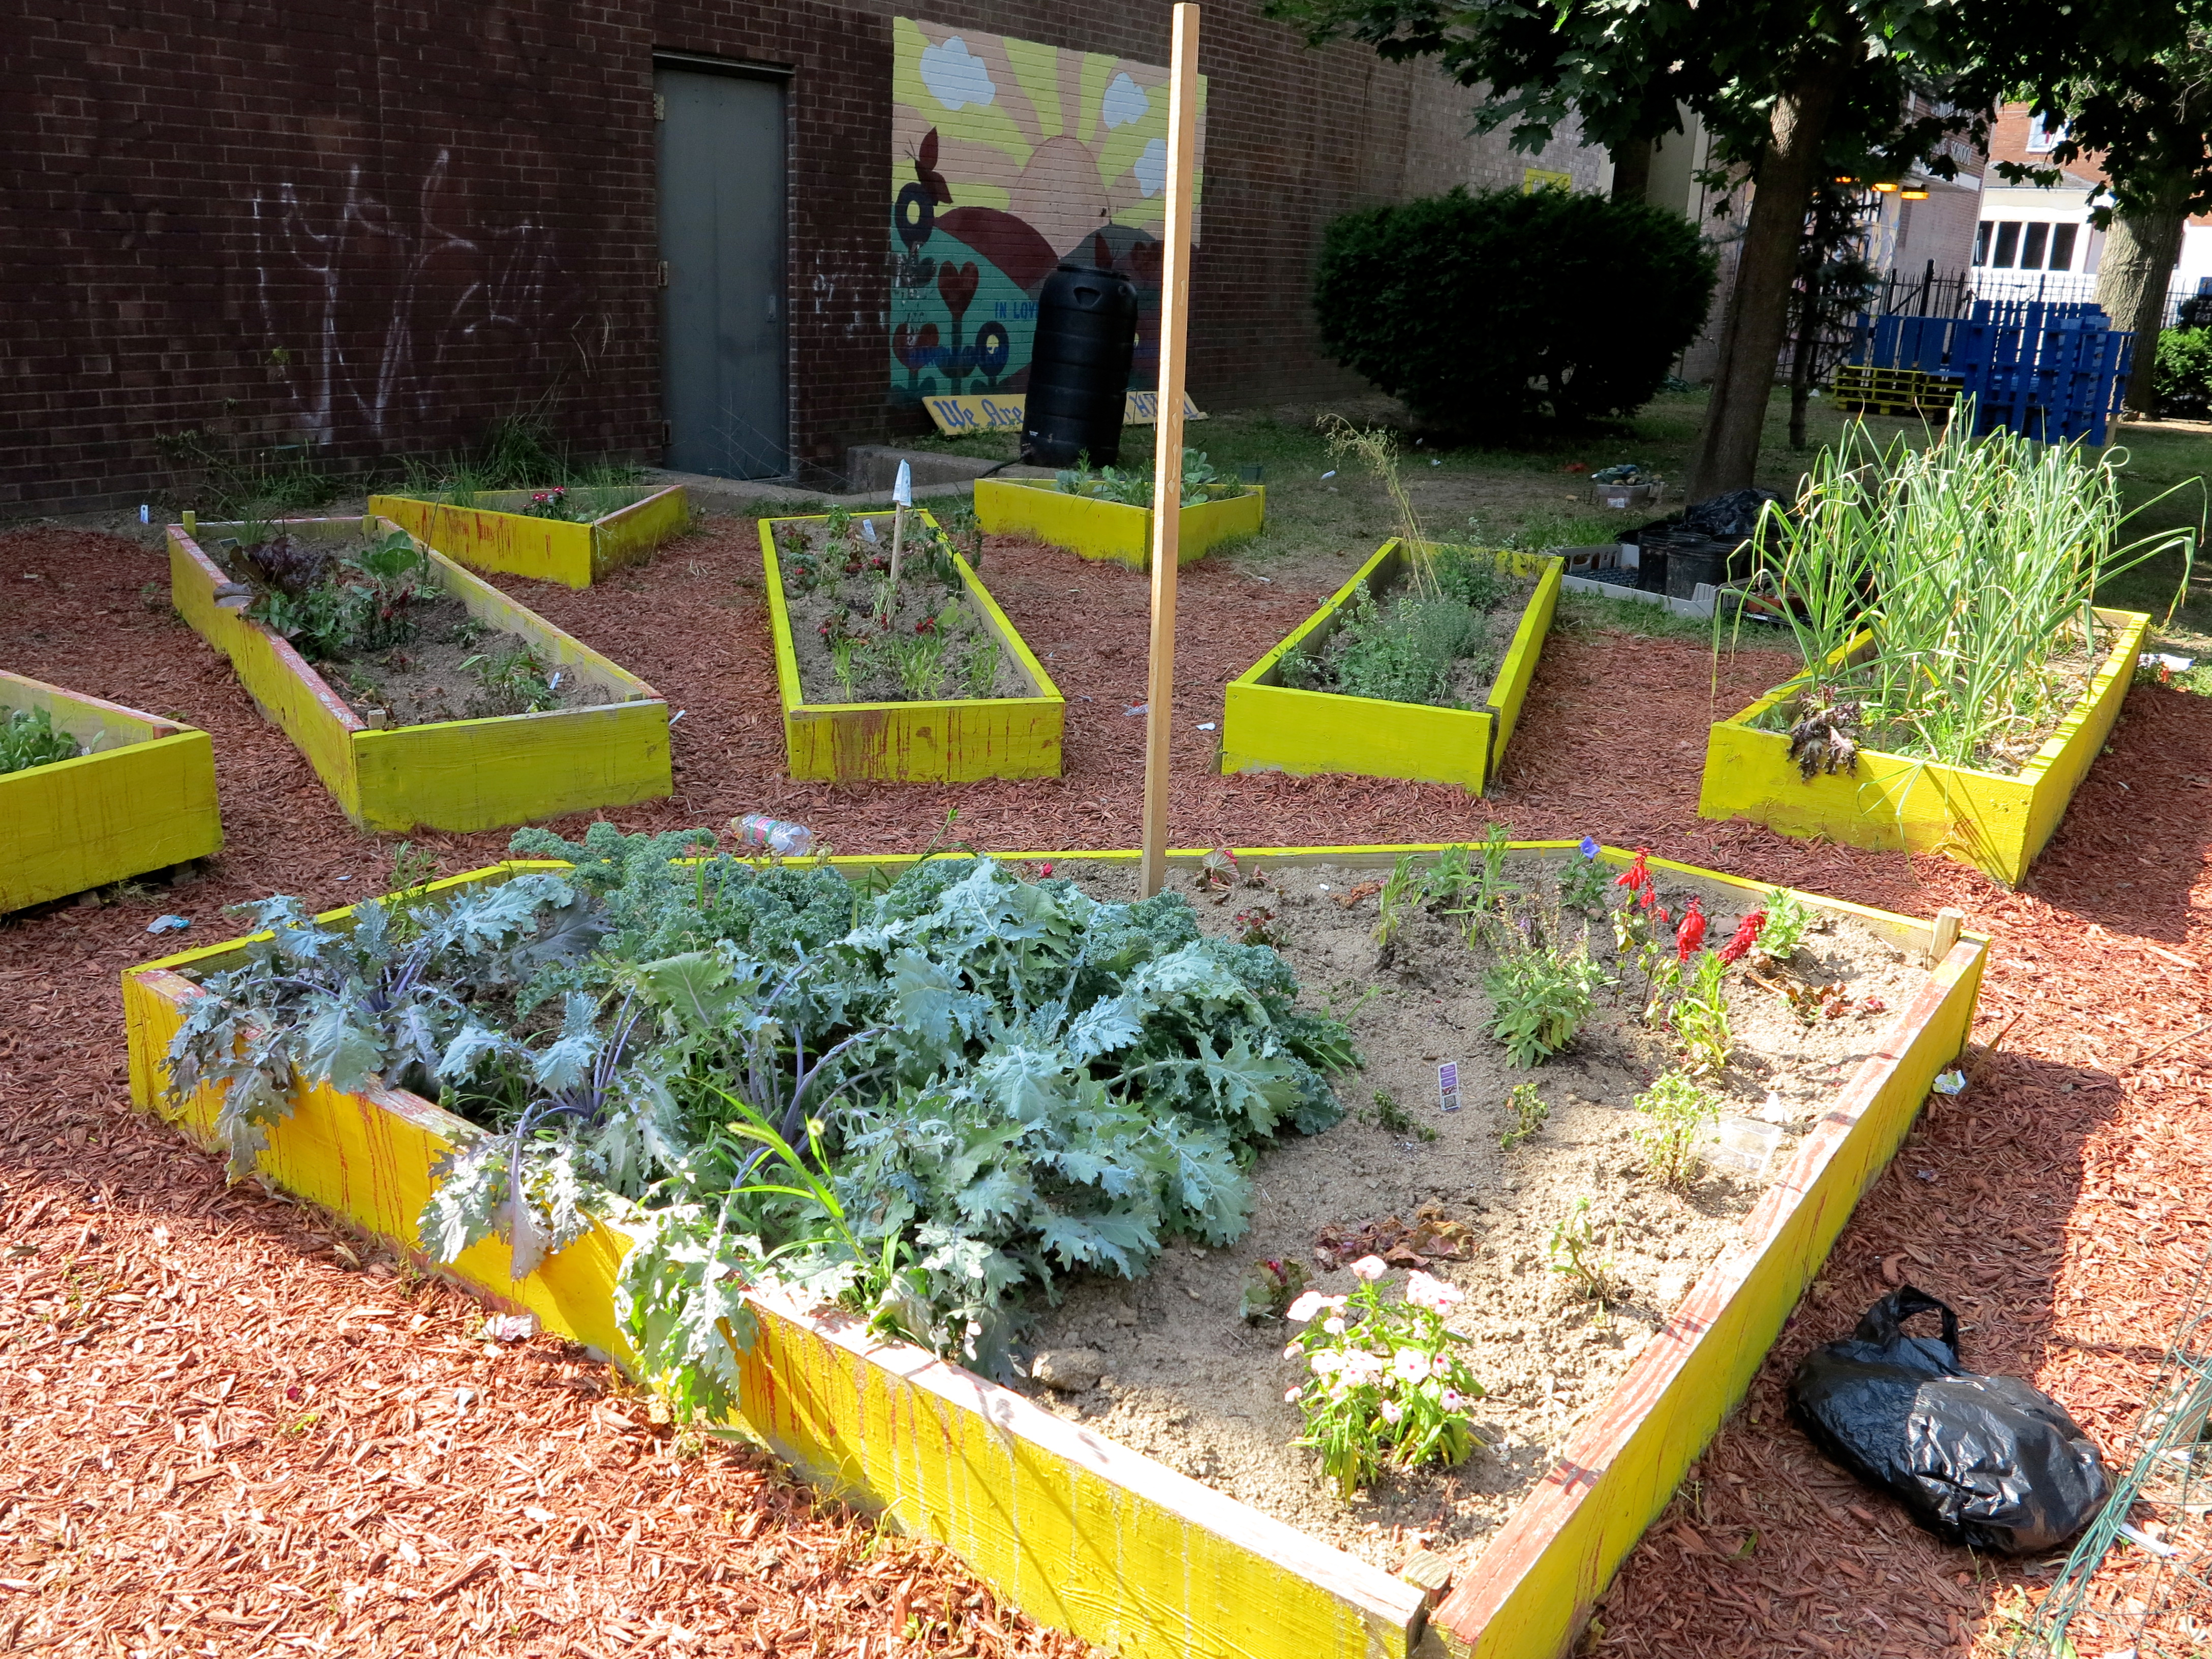 Huey Elementary's repainted, planted and weeded raised beds in a sunburst pattern.